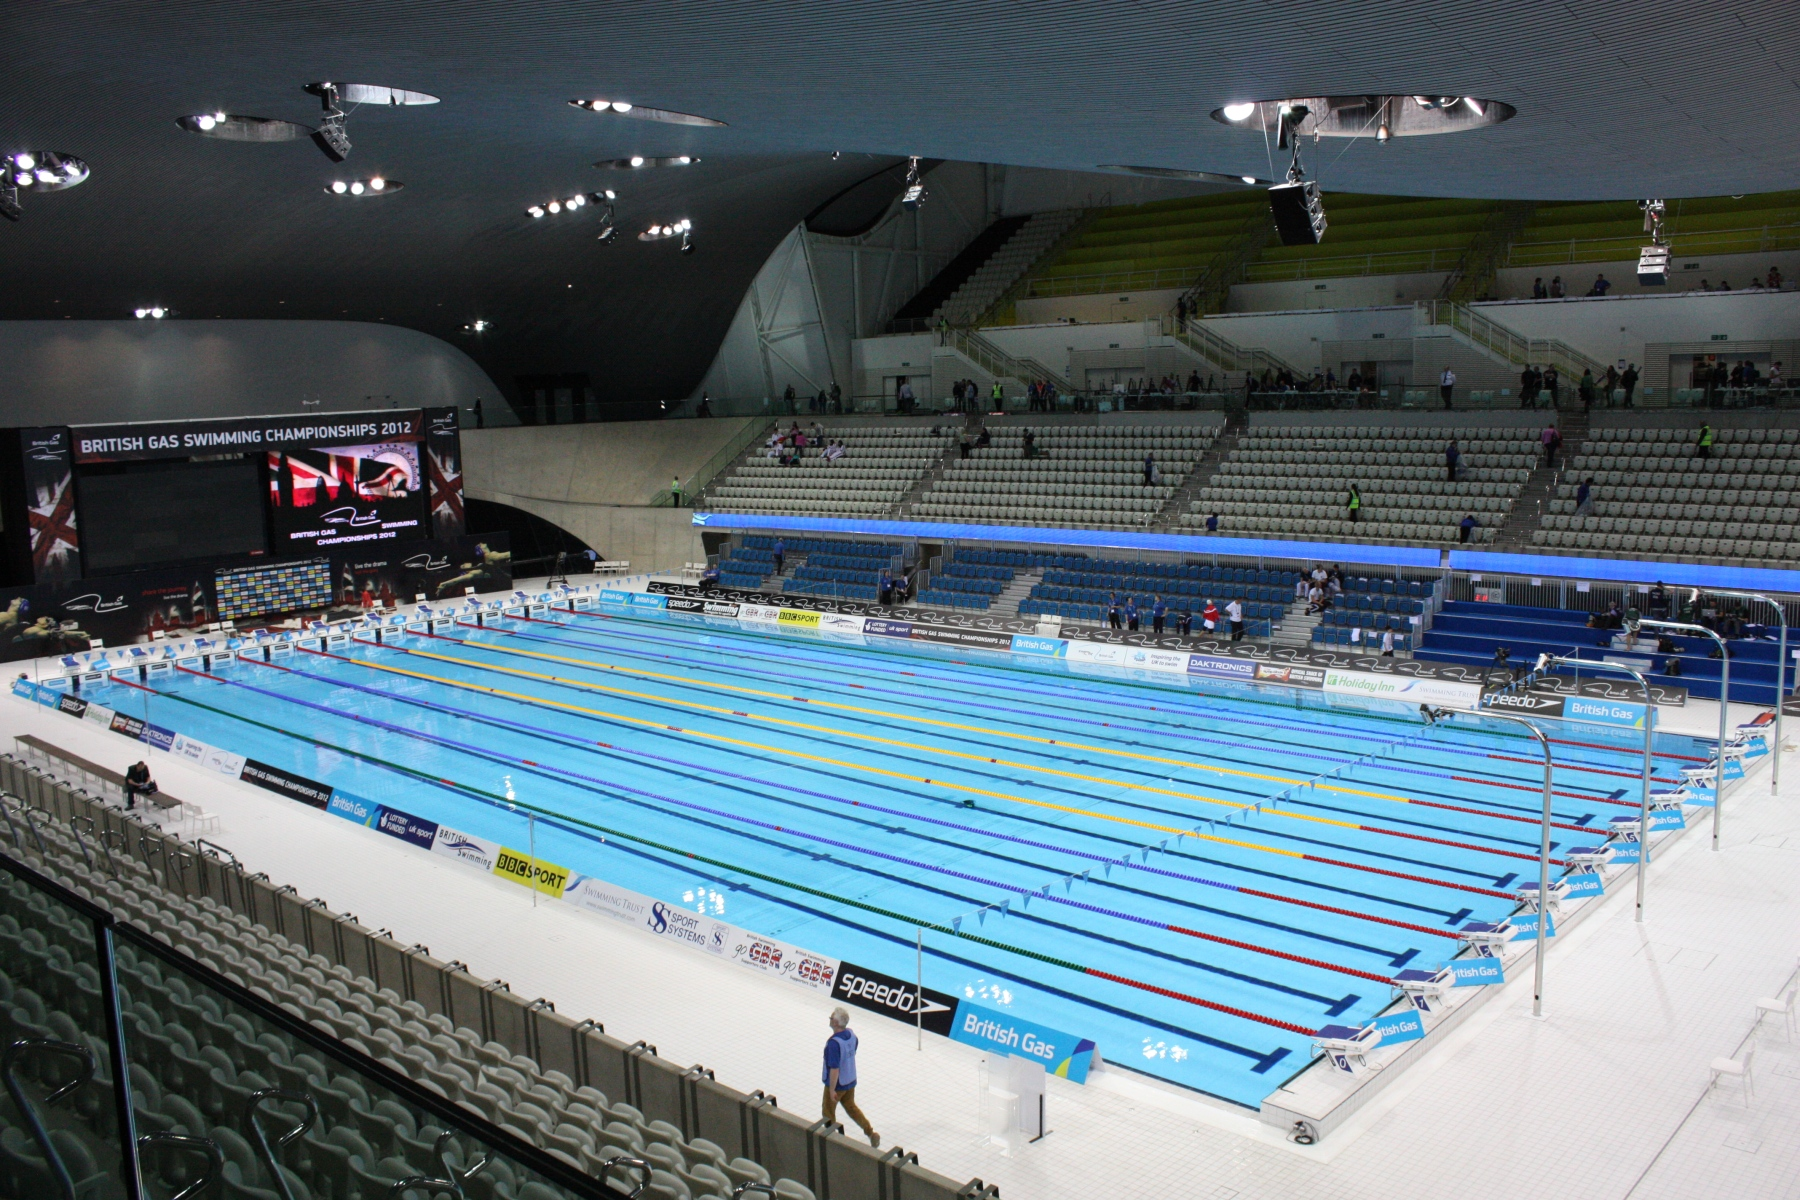 2012 olympics flickr idea olympic swimming pool